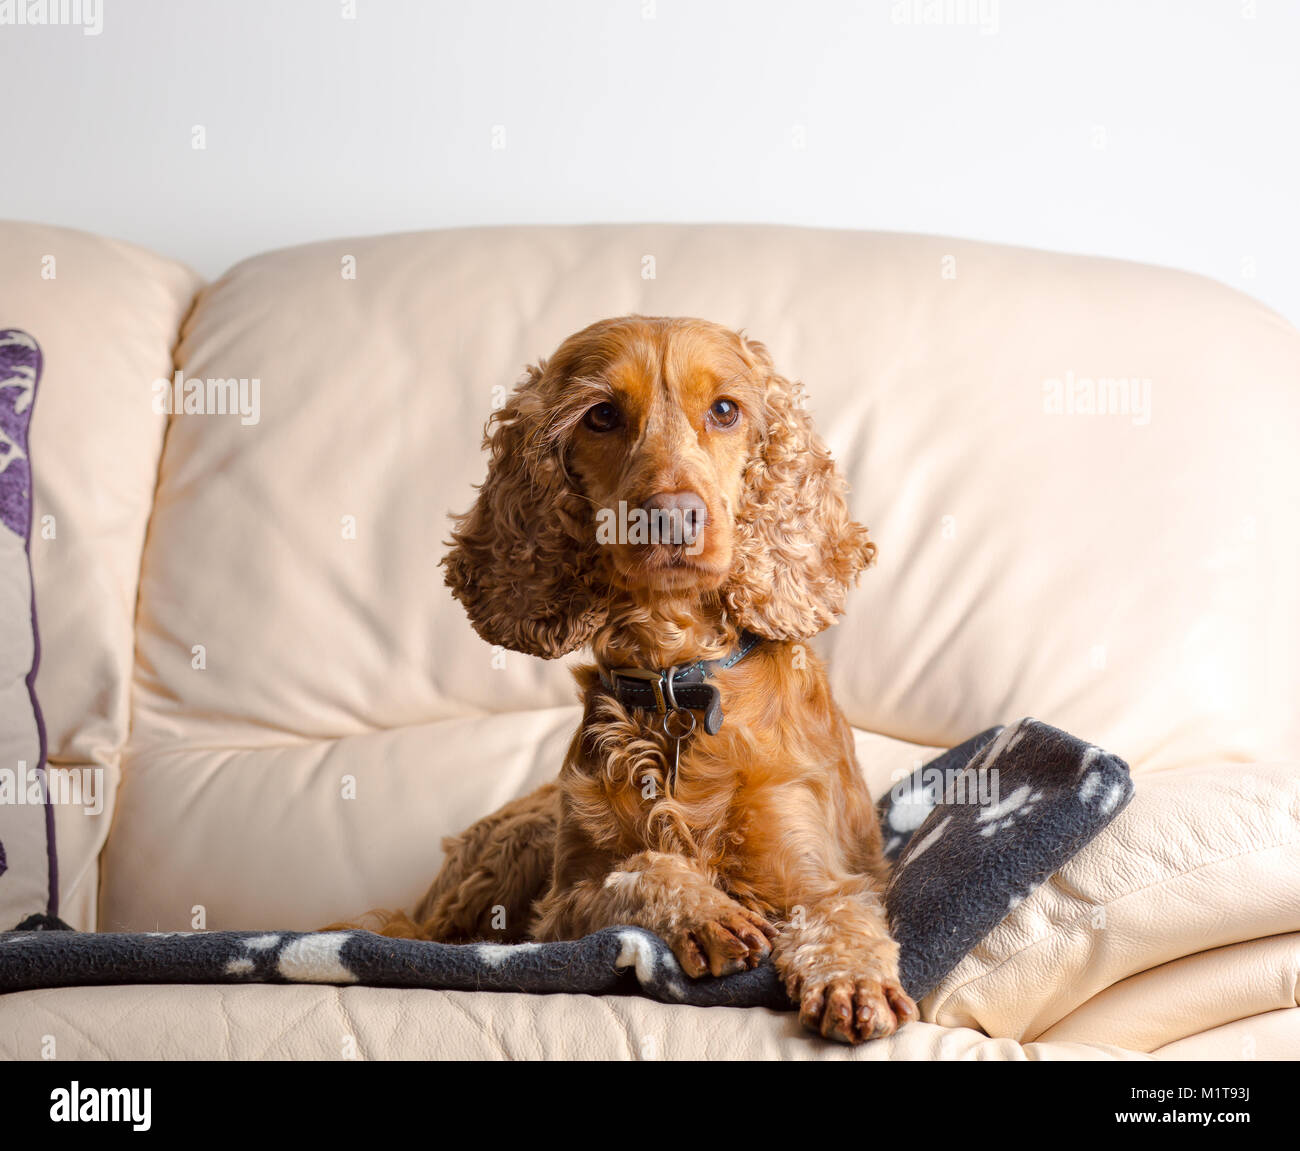 Indoor portrait of family pet dog (red, working cocker spaniel) enjoying home comforts sat on leather sofa. Posing - Stock Image